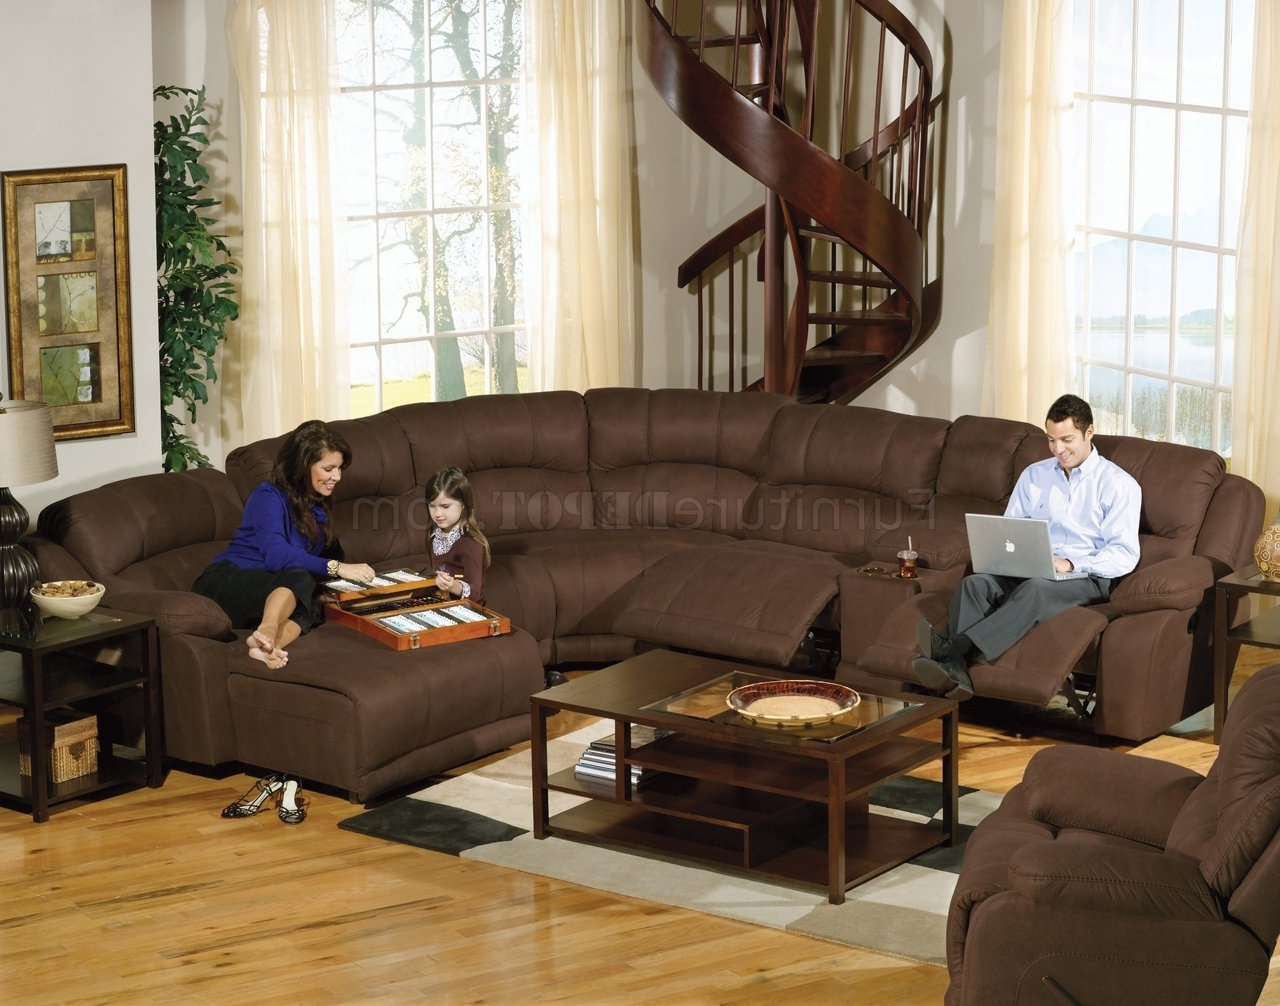 Oakville Sectional Sofas Within Most Up To Date Furniture : Brown Leather Sofa For Sale York Brown Leather Couch (View 3 of 20)